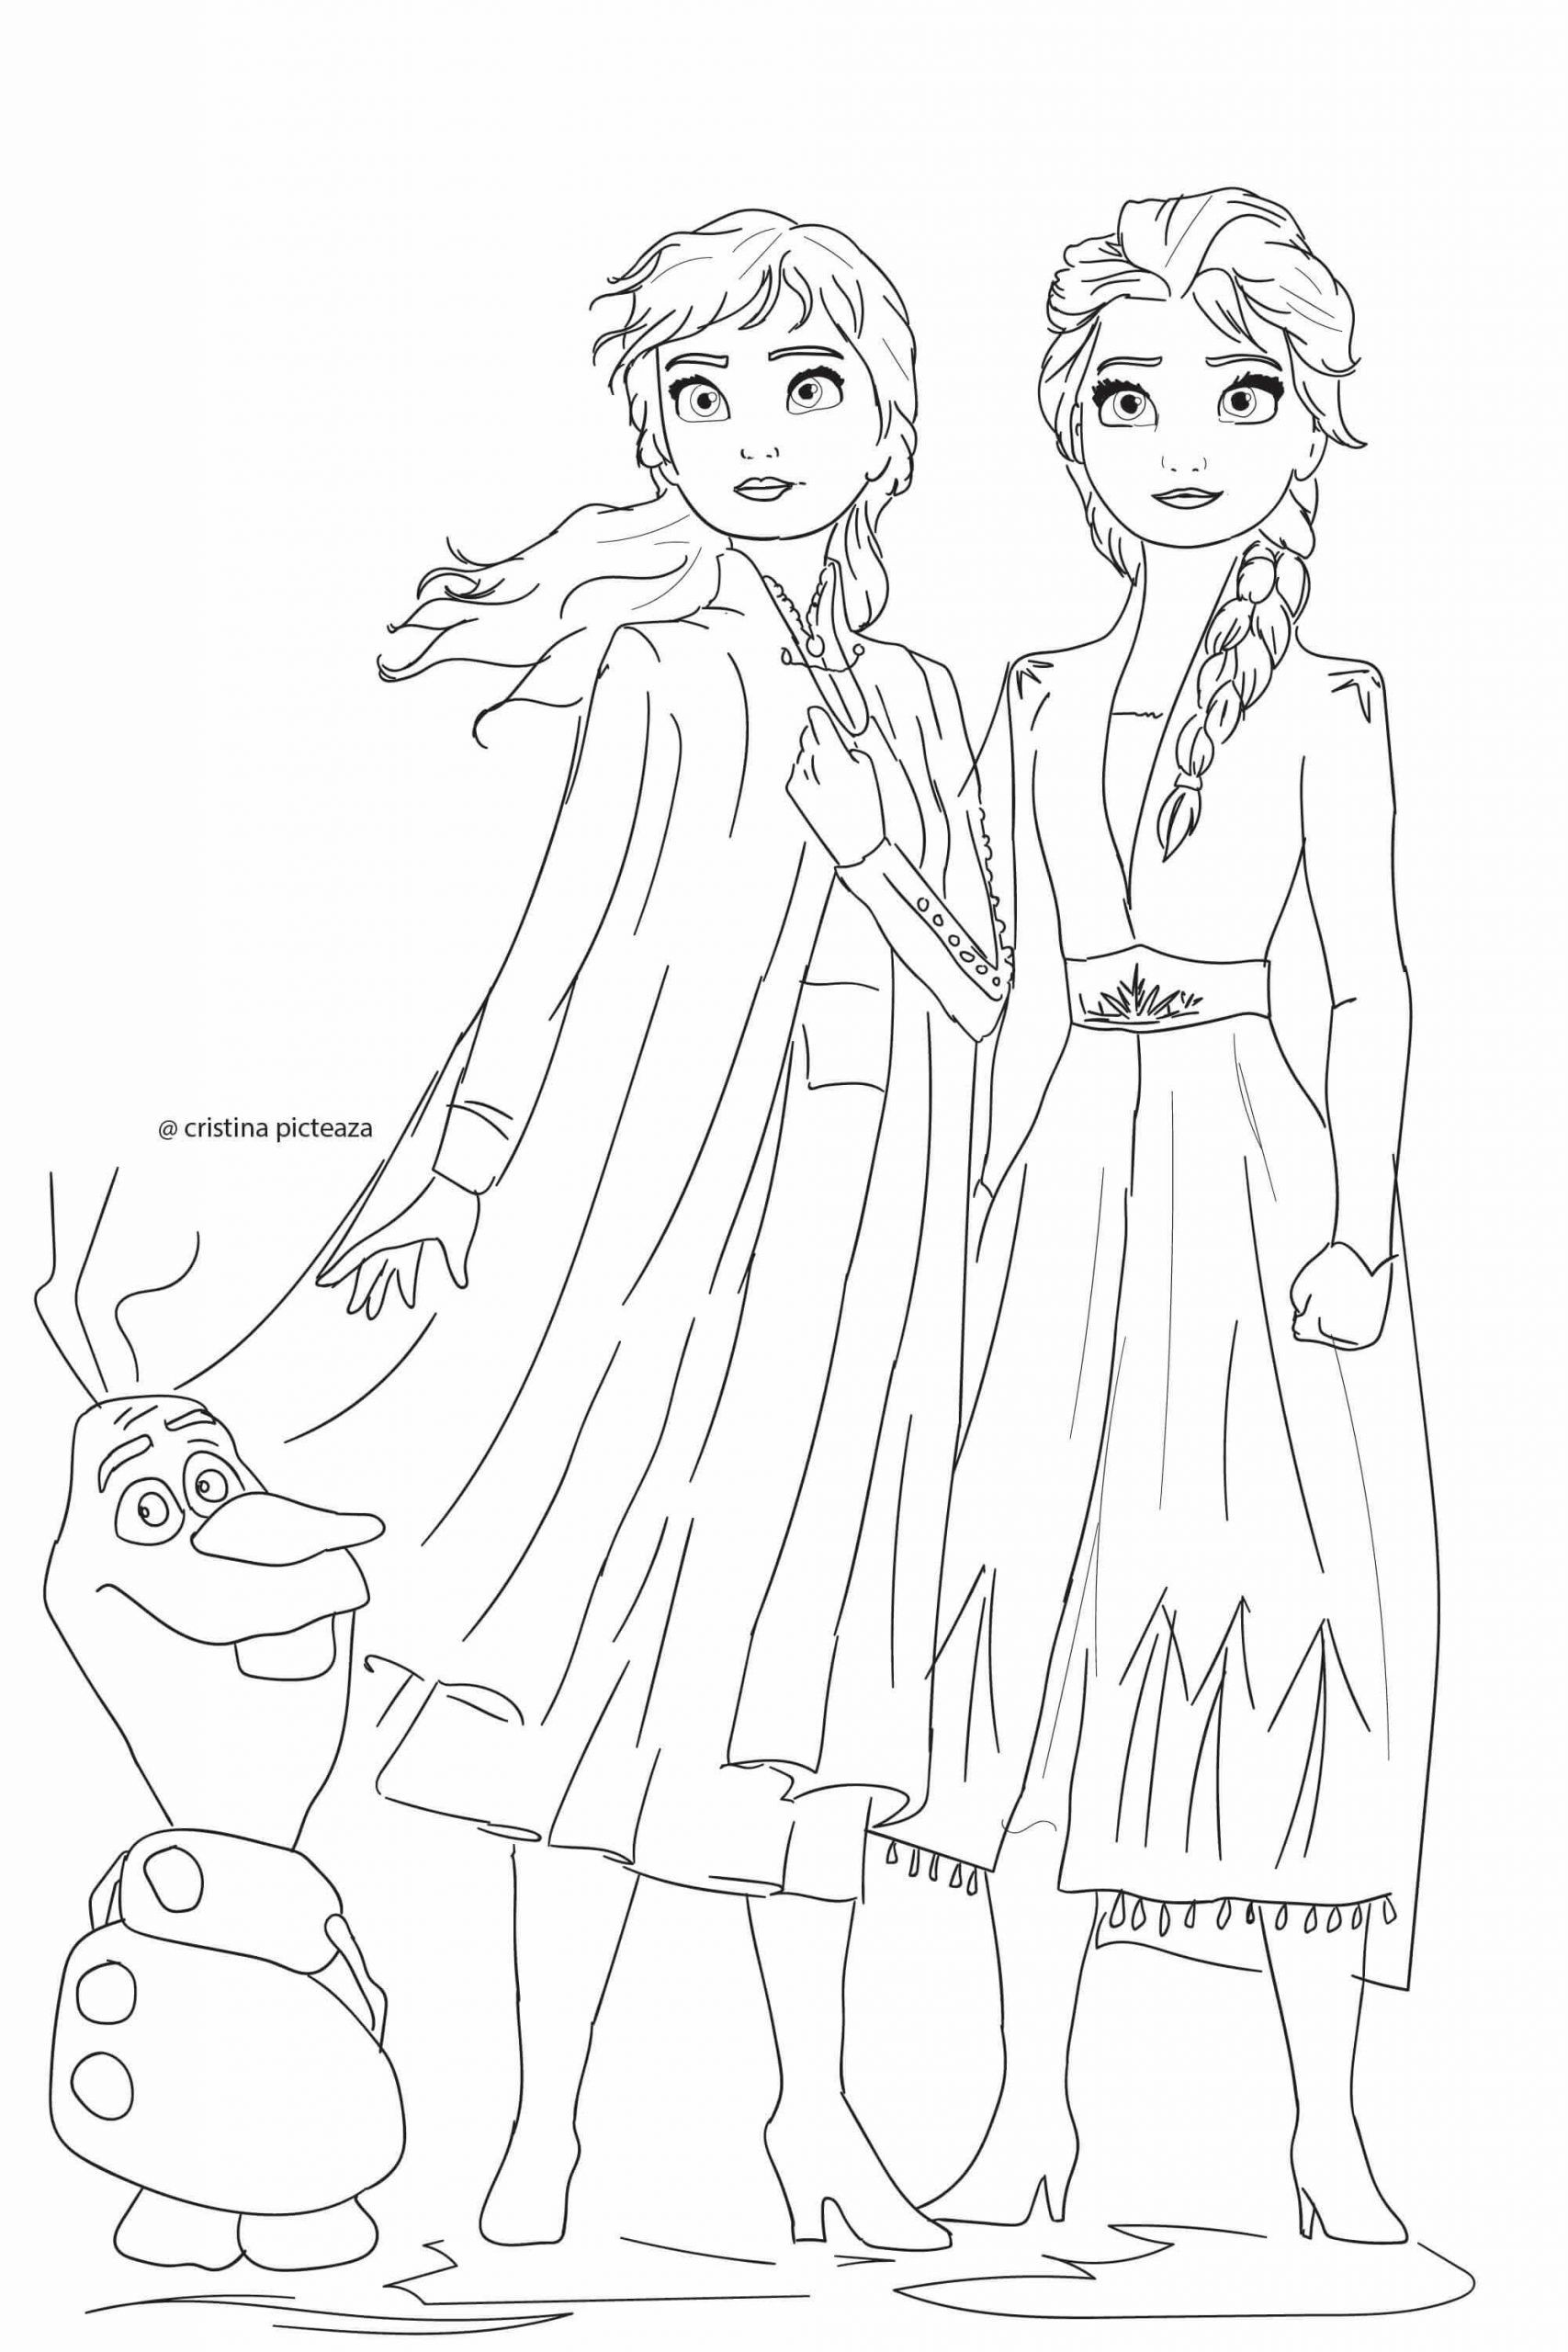 Dragon Face Coloring Page Youngandtae Com Elsa Coloring Pages Disney Princess Coloring Pages Frozen Coloring Pages